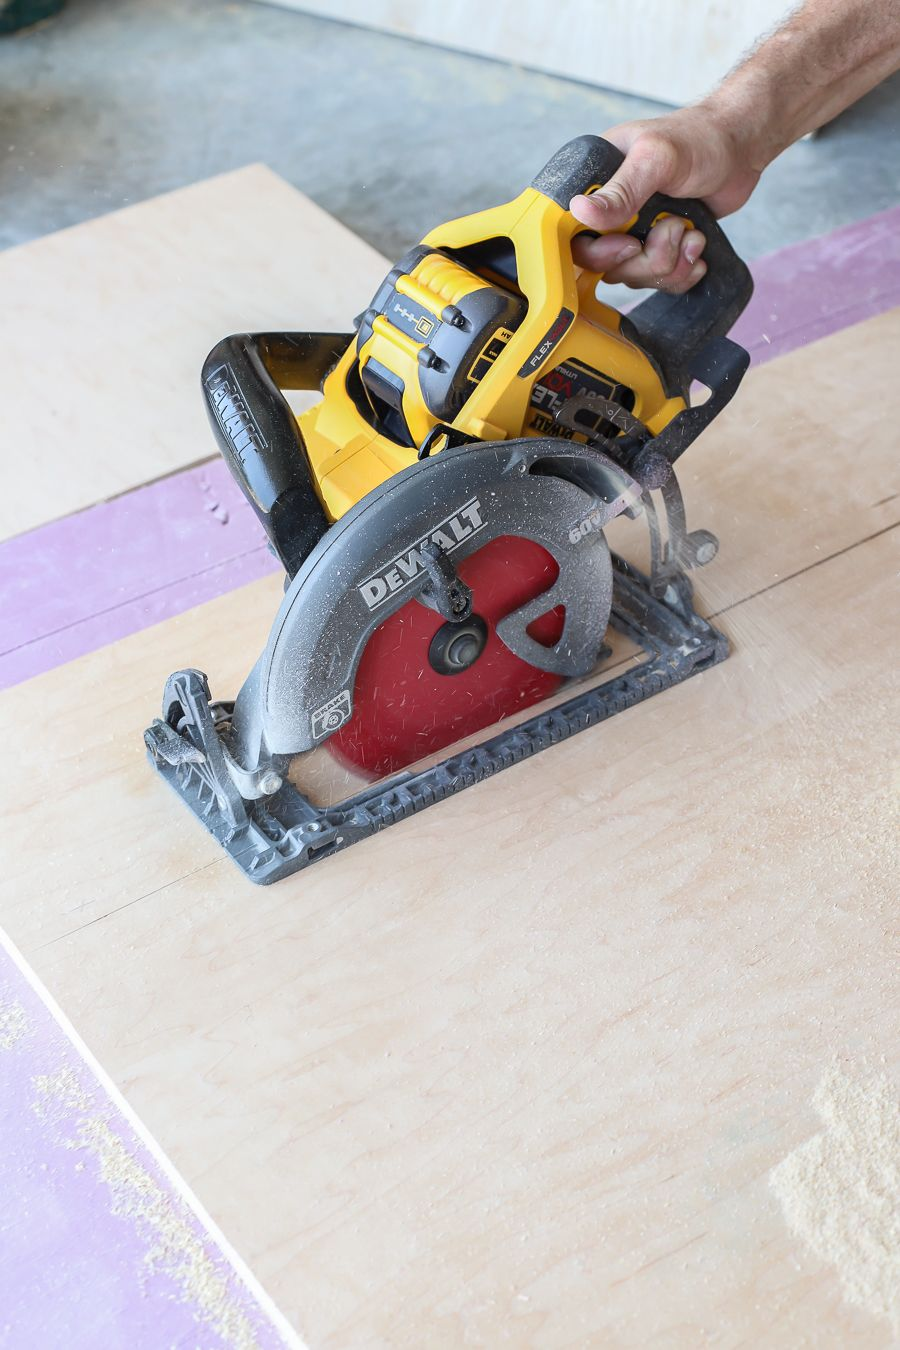 Dewalt Cordless Brushless Worm Drive Style Circular Saw Tool Review Circular Saw Woodworking Worm Drive